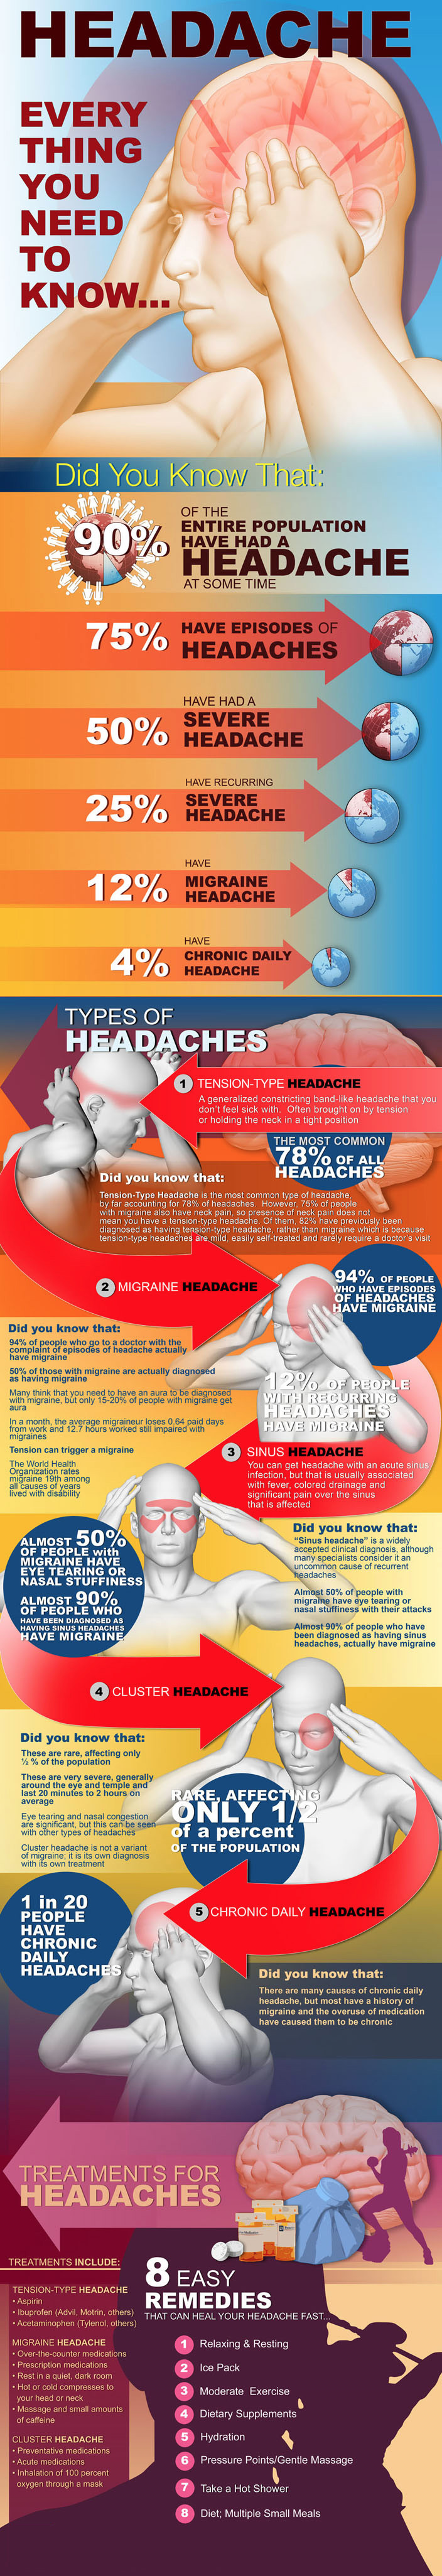 Headaches Treatment